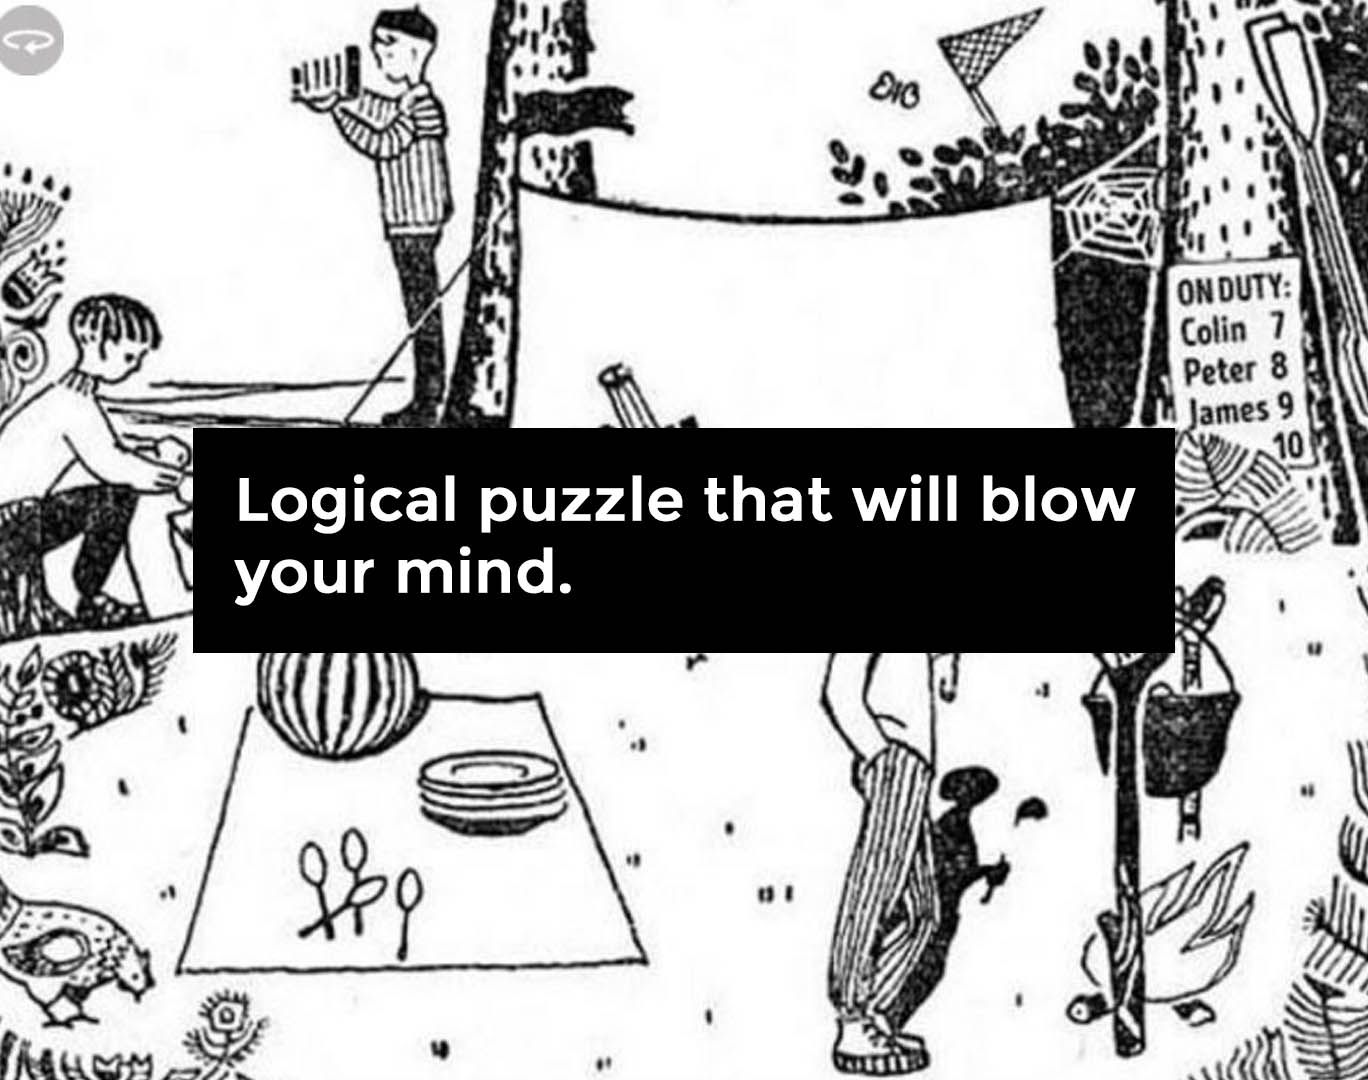 12 Brain-teasers That Will Drive You Completely Crazy!